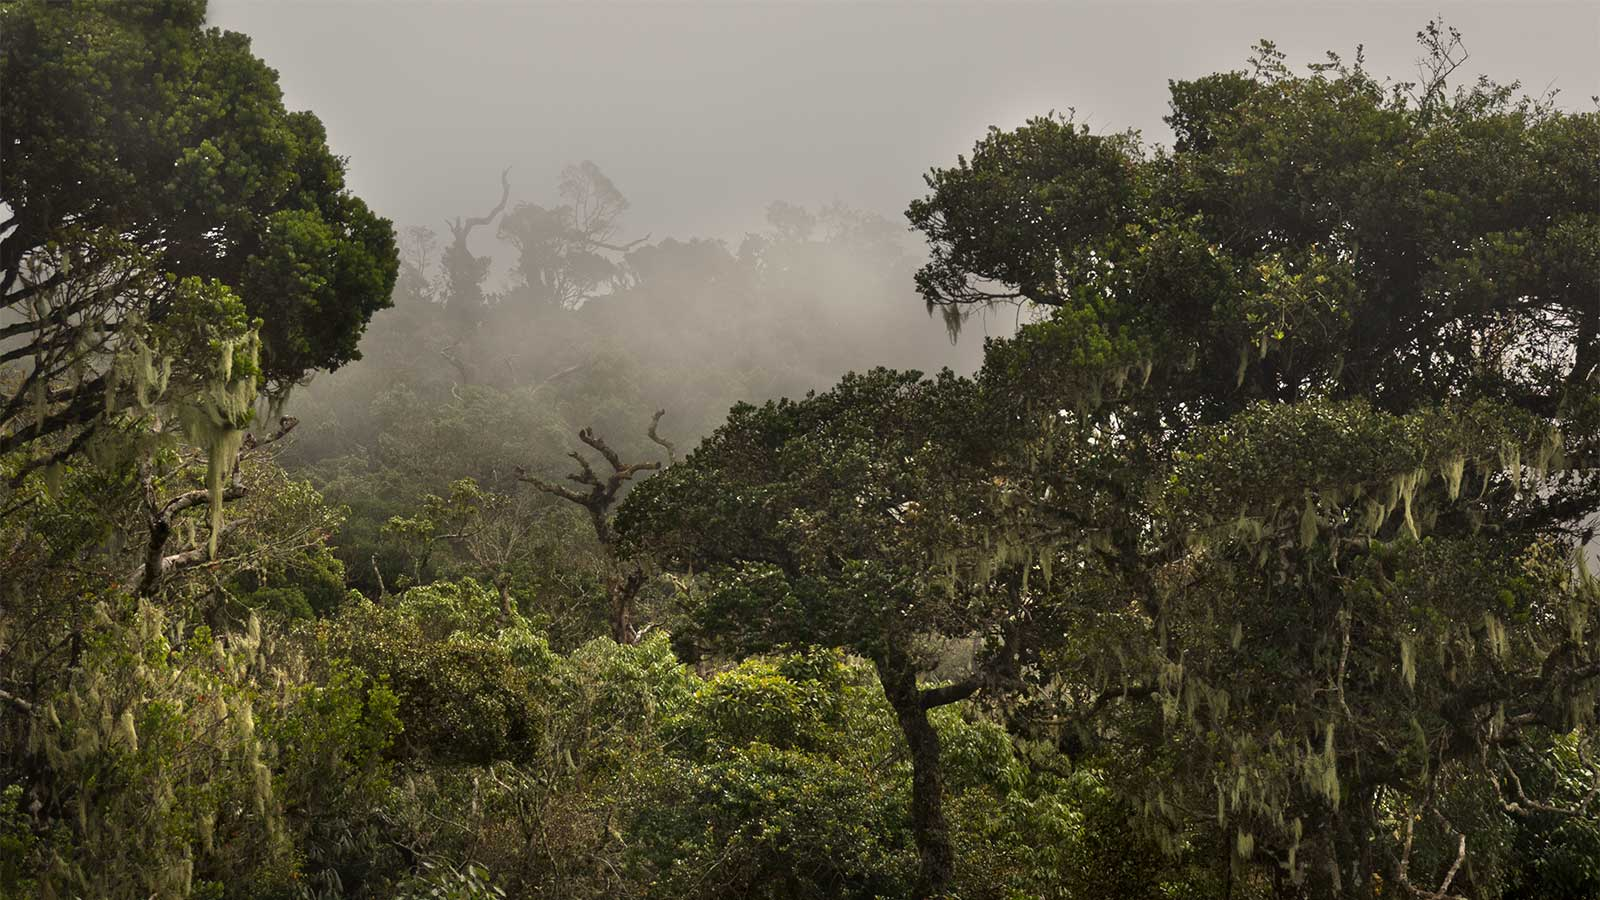 Leave only footprints in Horton Plains